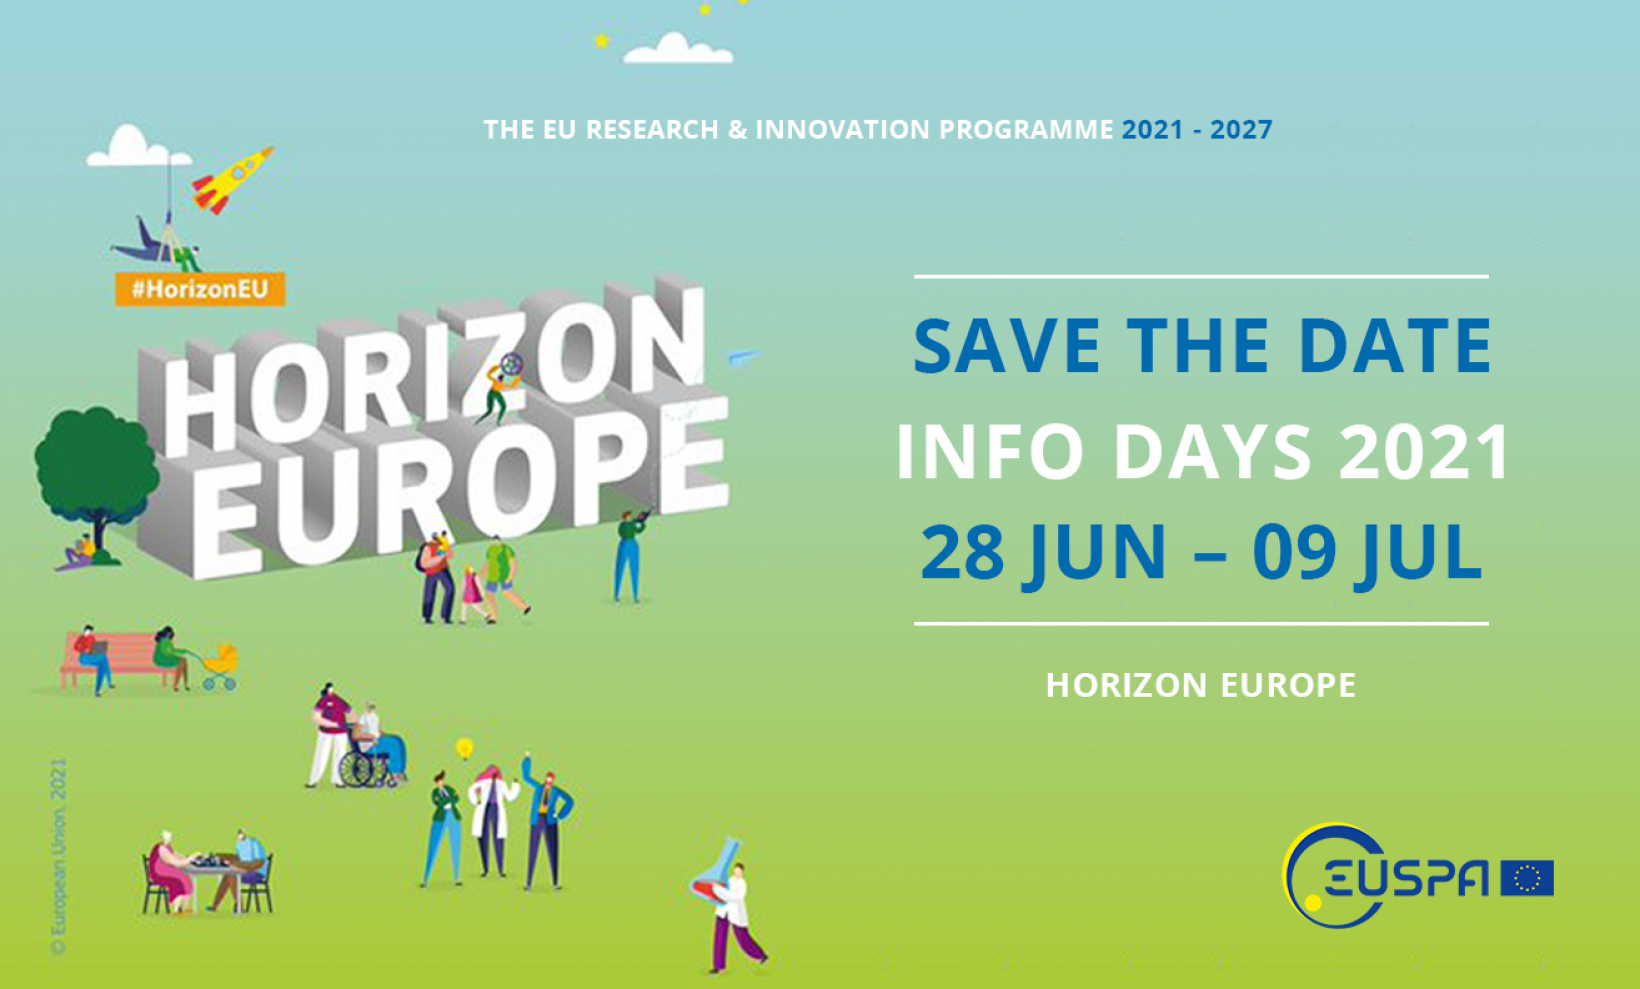 Save the date for Horizon Europe Info Days 2021!